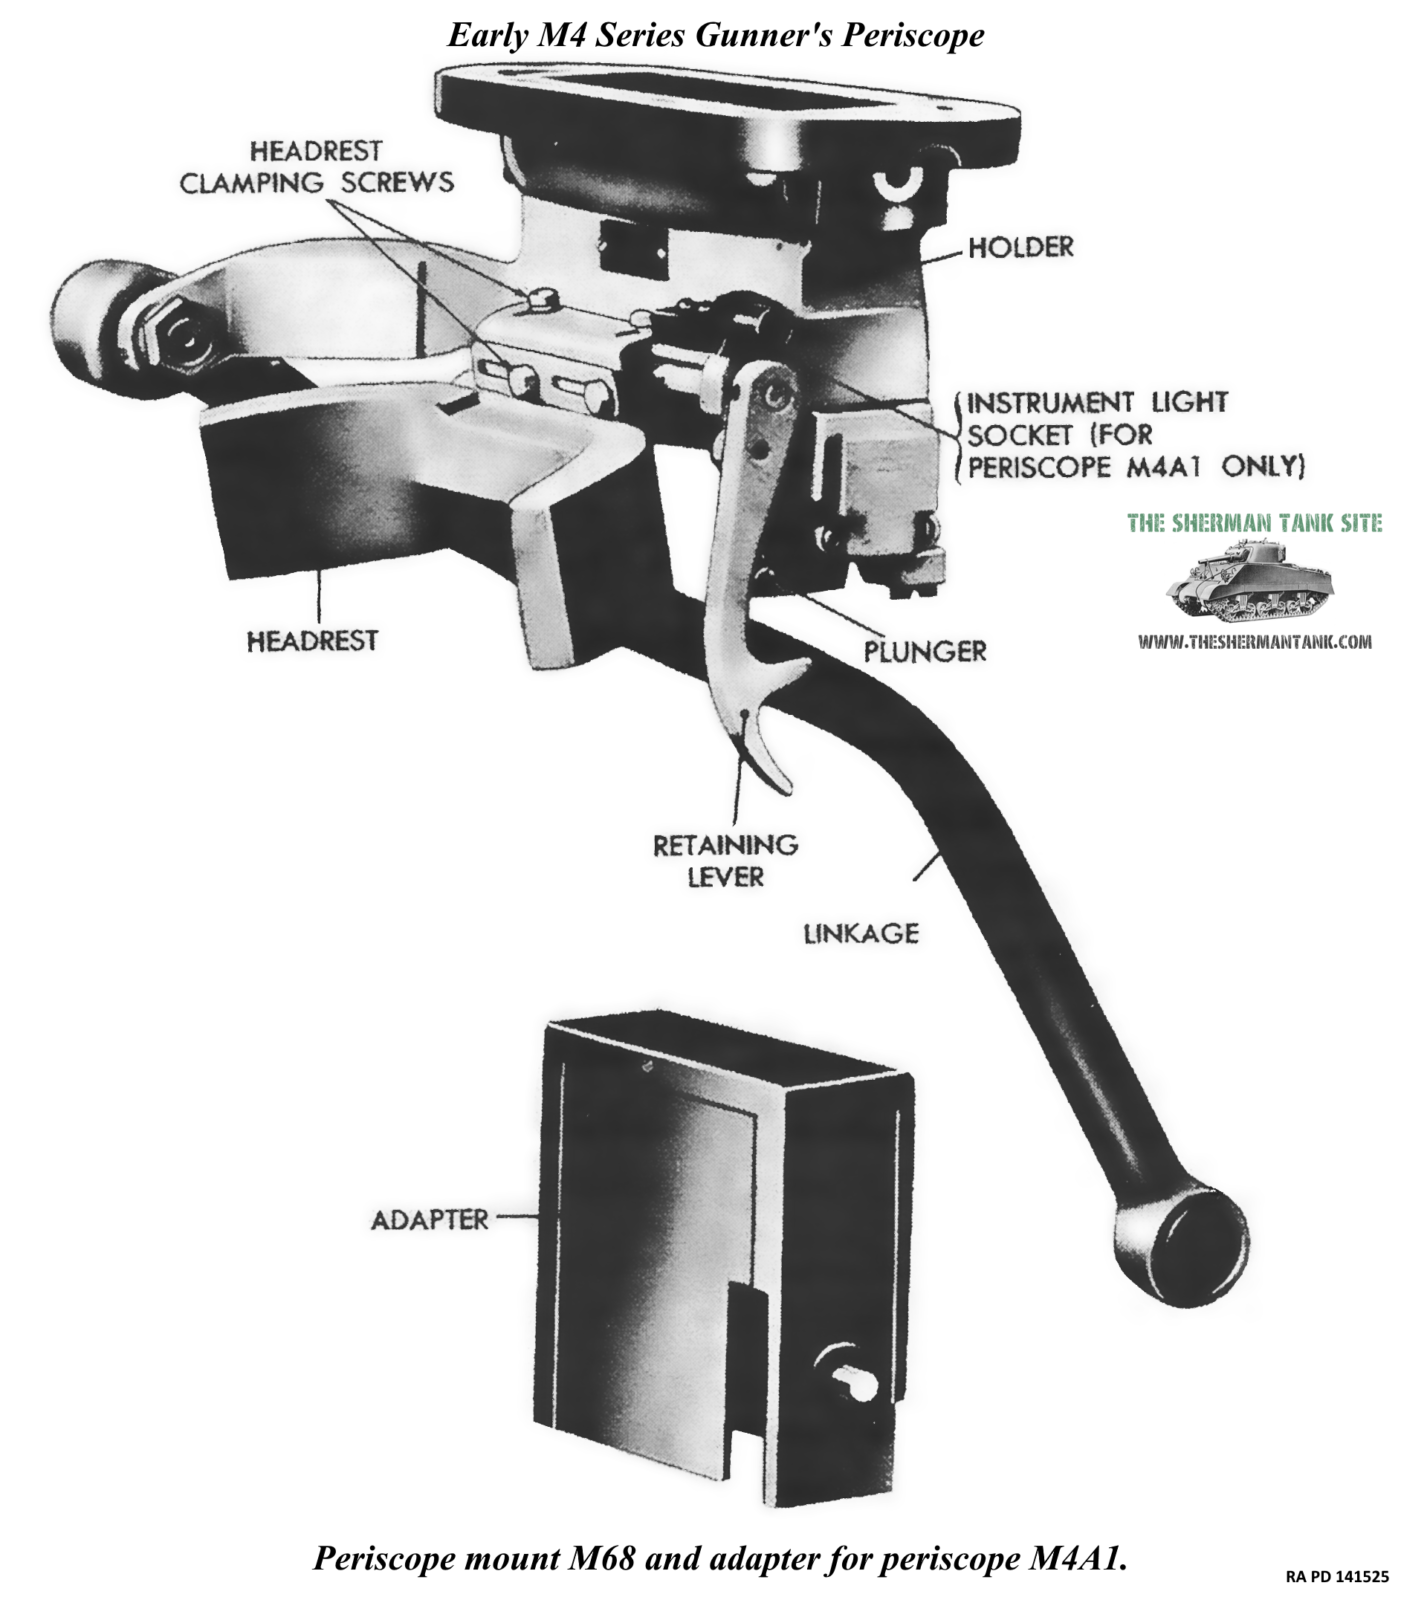 F414-Periscope-mount-M68-and-adapter-M4A